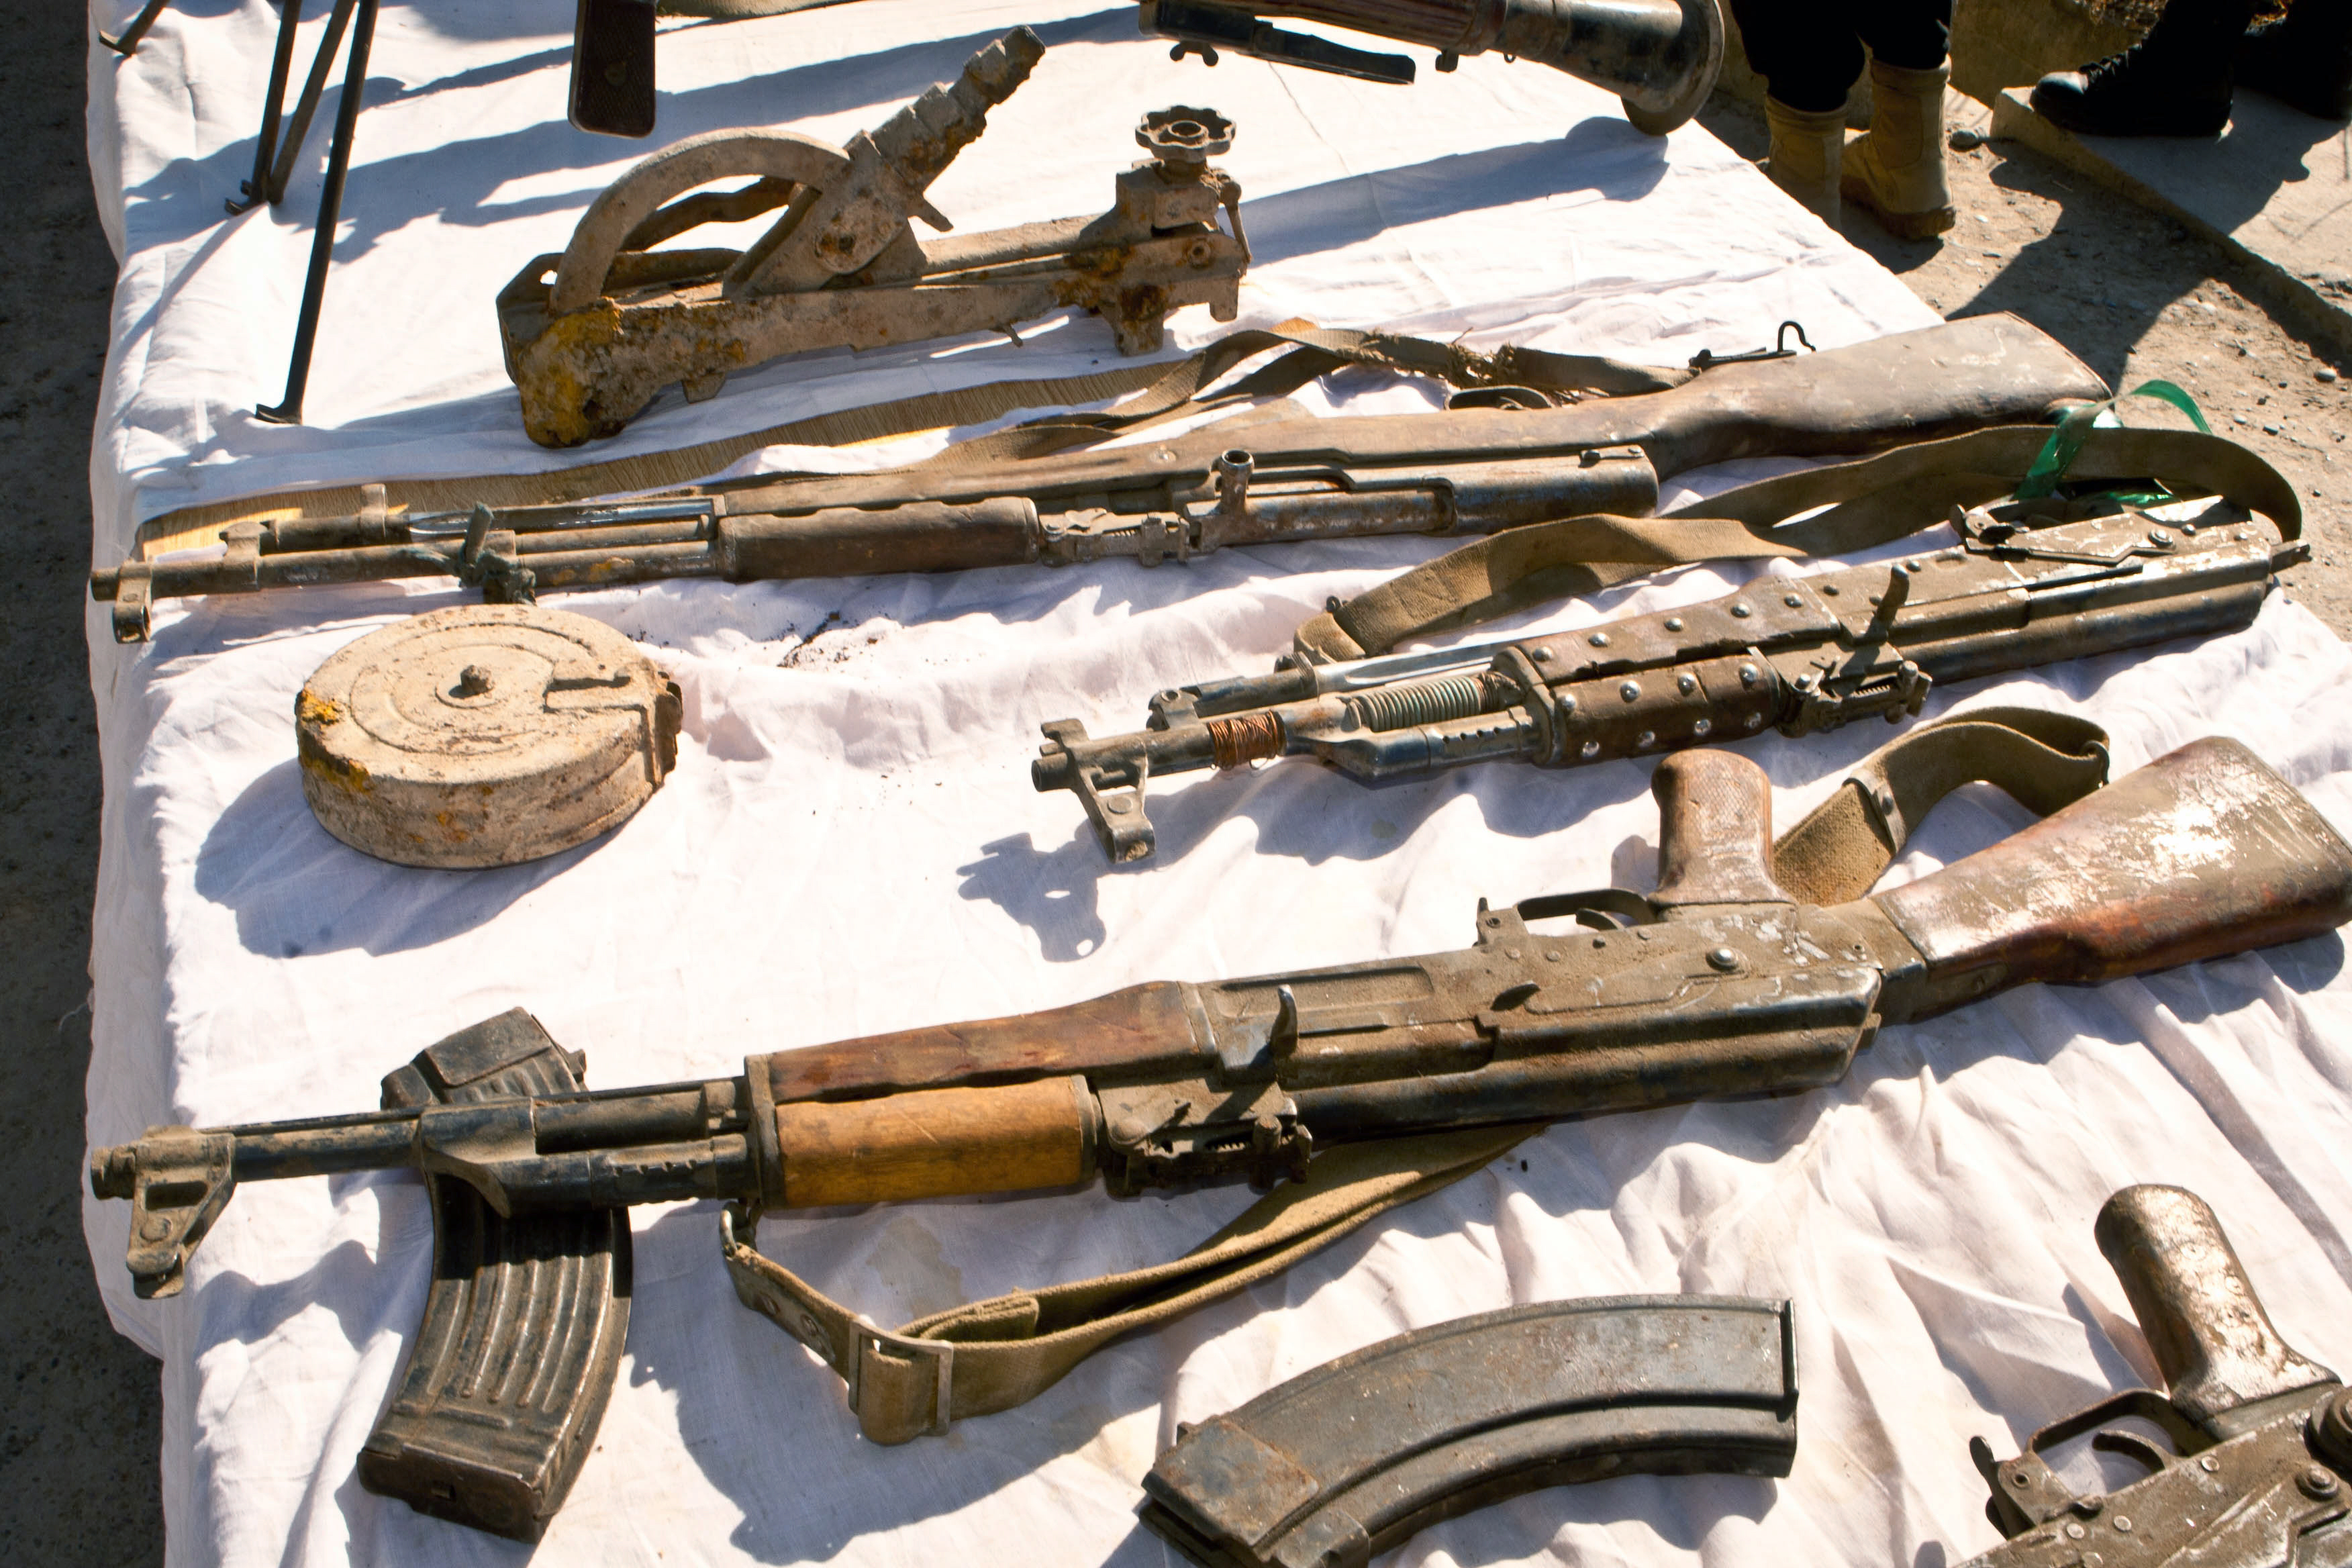 Weapons captured during a counterinsurgency operation in Afghanistan. Elite patrolmen from Helmand's Provincial Response Company (PRC) uncovered the large haul of weapons and drugs in two separate operations over a 48-hour period. The PRC deployed on two separate operations in Helmand Province following credible intelligence, to search suspect compounds and uncover significant finds of weapons and drugs.